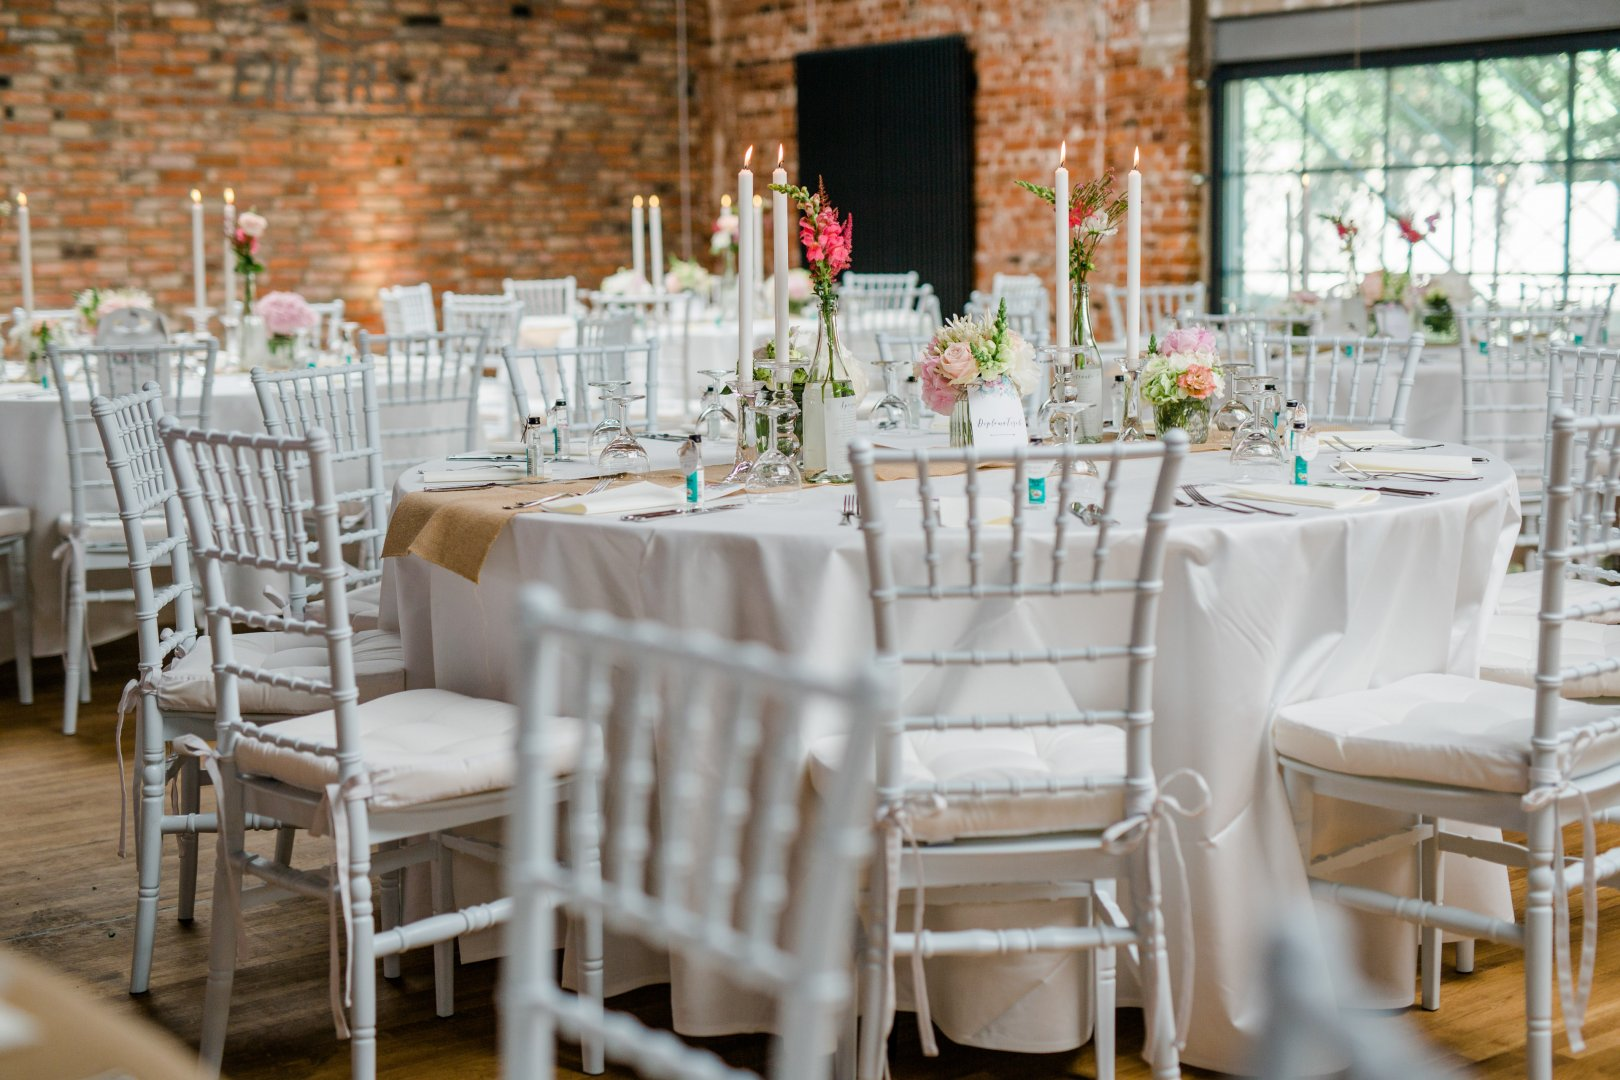 Chair Chiavari chair Wedding banquet Furniture Decoration Rehearsal dinner Table Tablecloth Wedding reception Room Restaurant Textile Function hall Event Flower Linens Ceremony Floral design Centrepiece Party Interior design Plant Banquet Floristry Flower Arranging